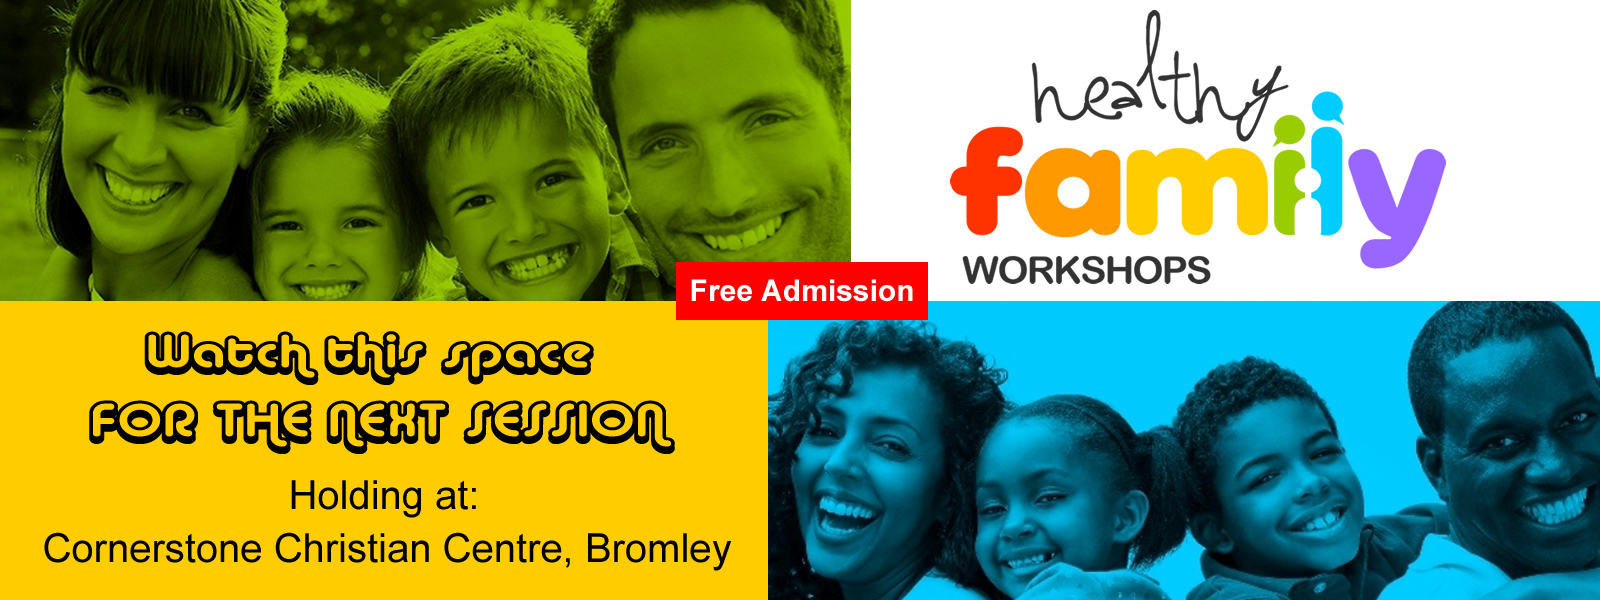 Healthy Family Workshop